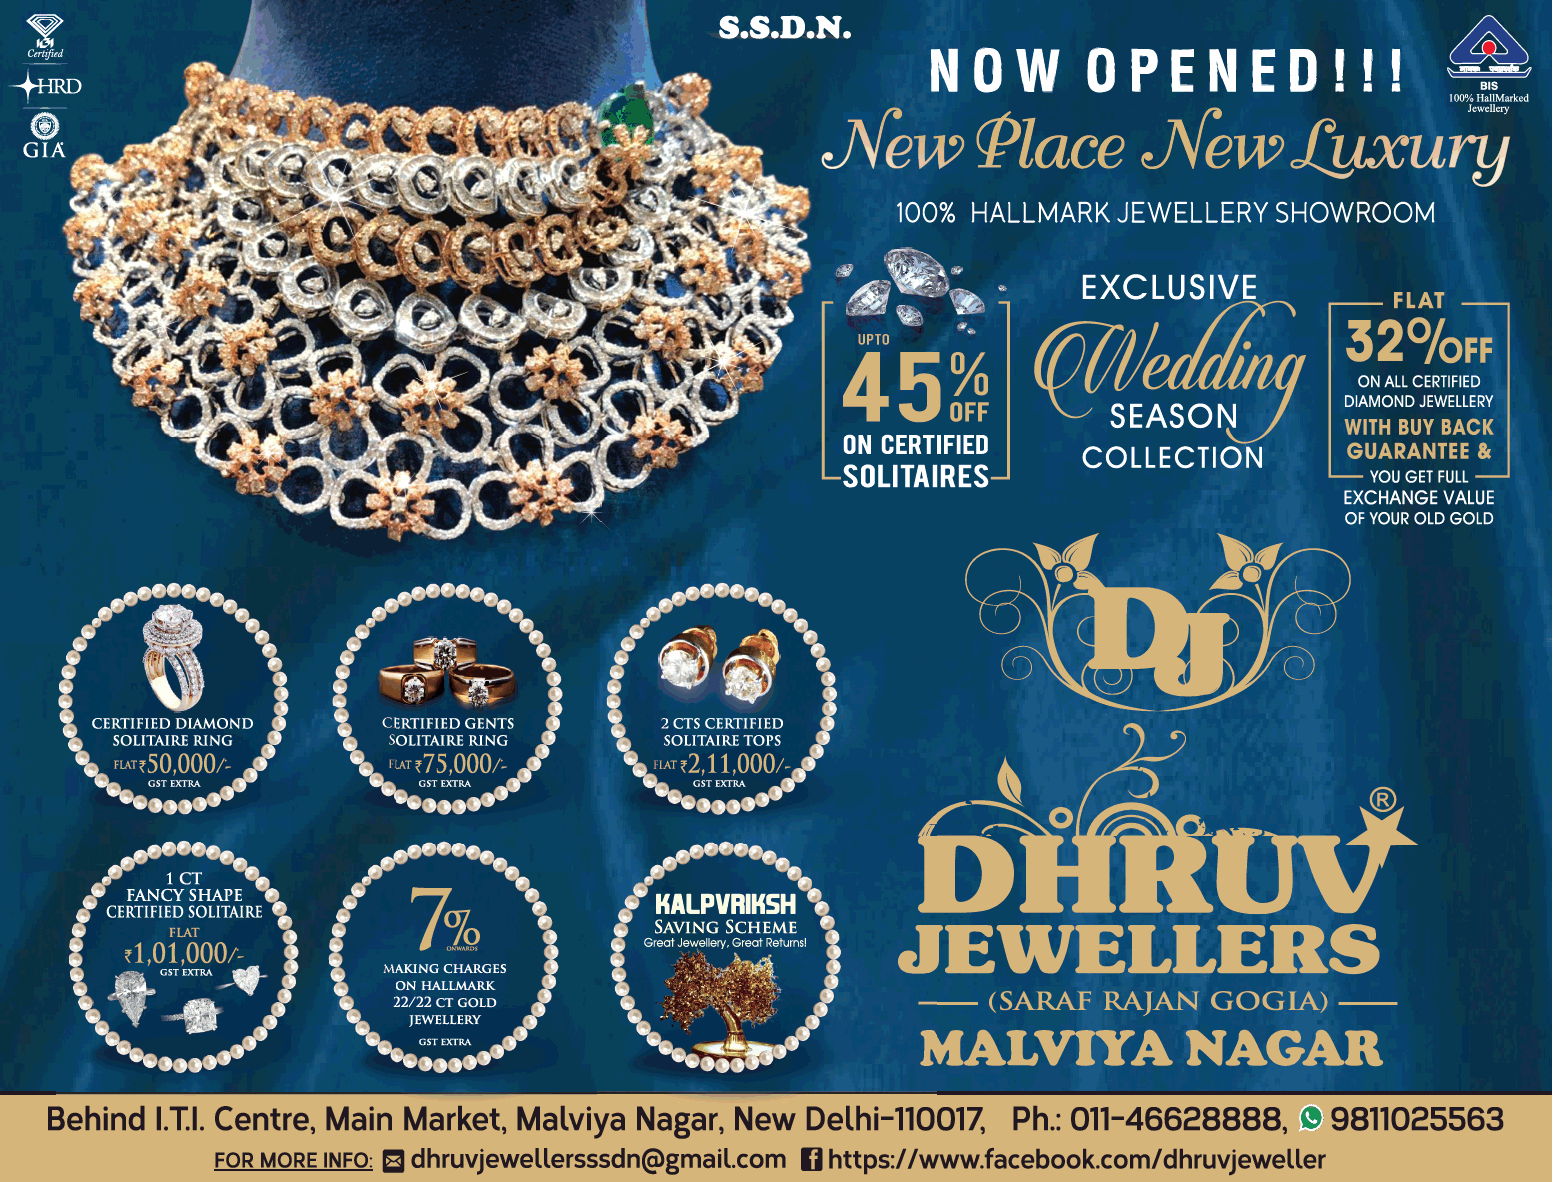 Dhruv Jewellers Now Opened New Place New Luxury 45% Off On Certified Solitaires Ad